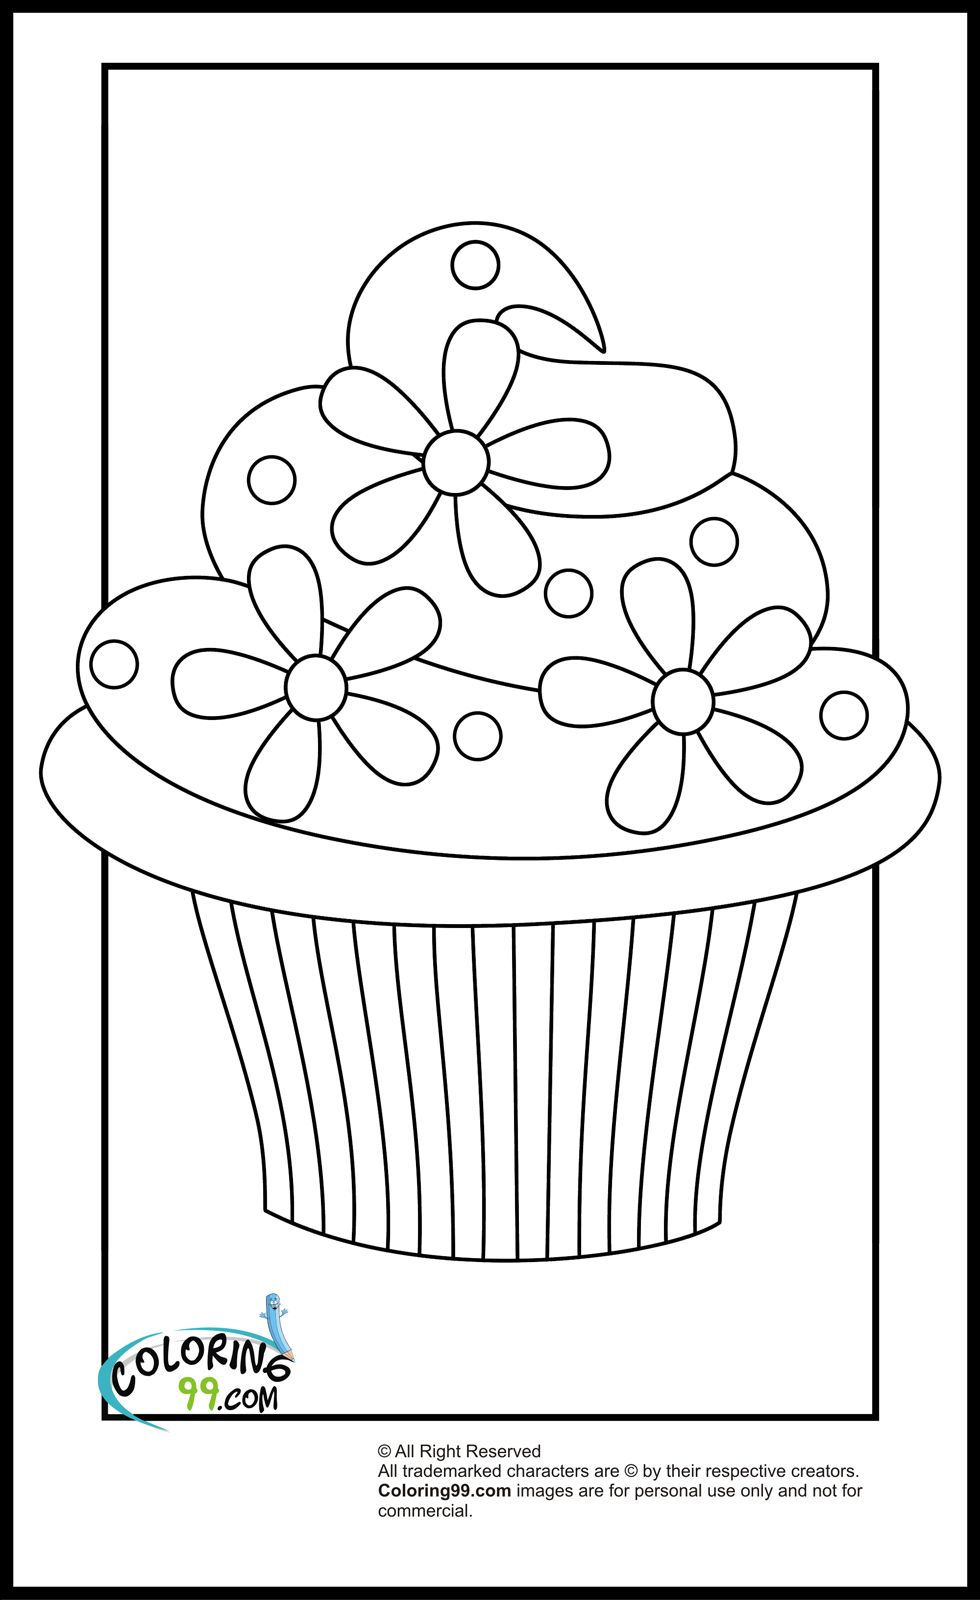 disney characters coloring pages easy cupcakes | Cupcake Coloring Pages | free printable cupcake coloring ...